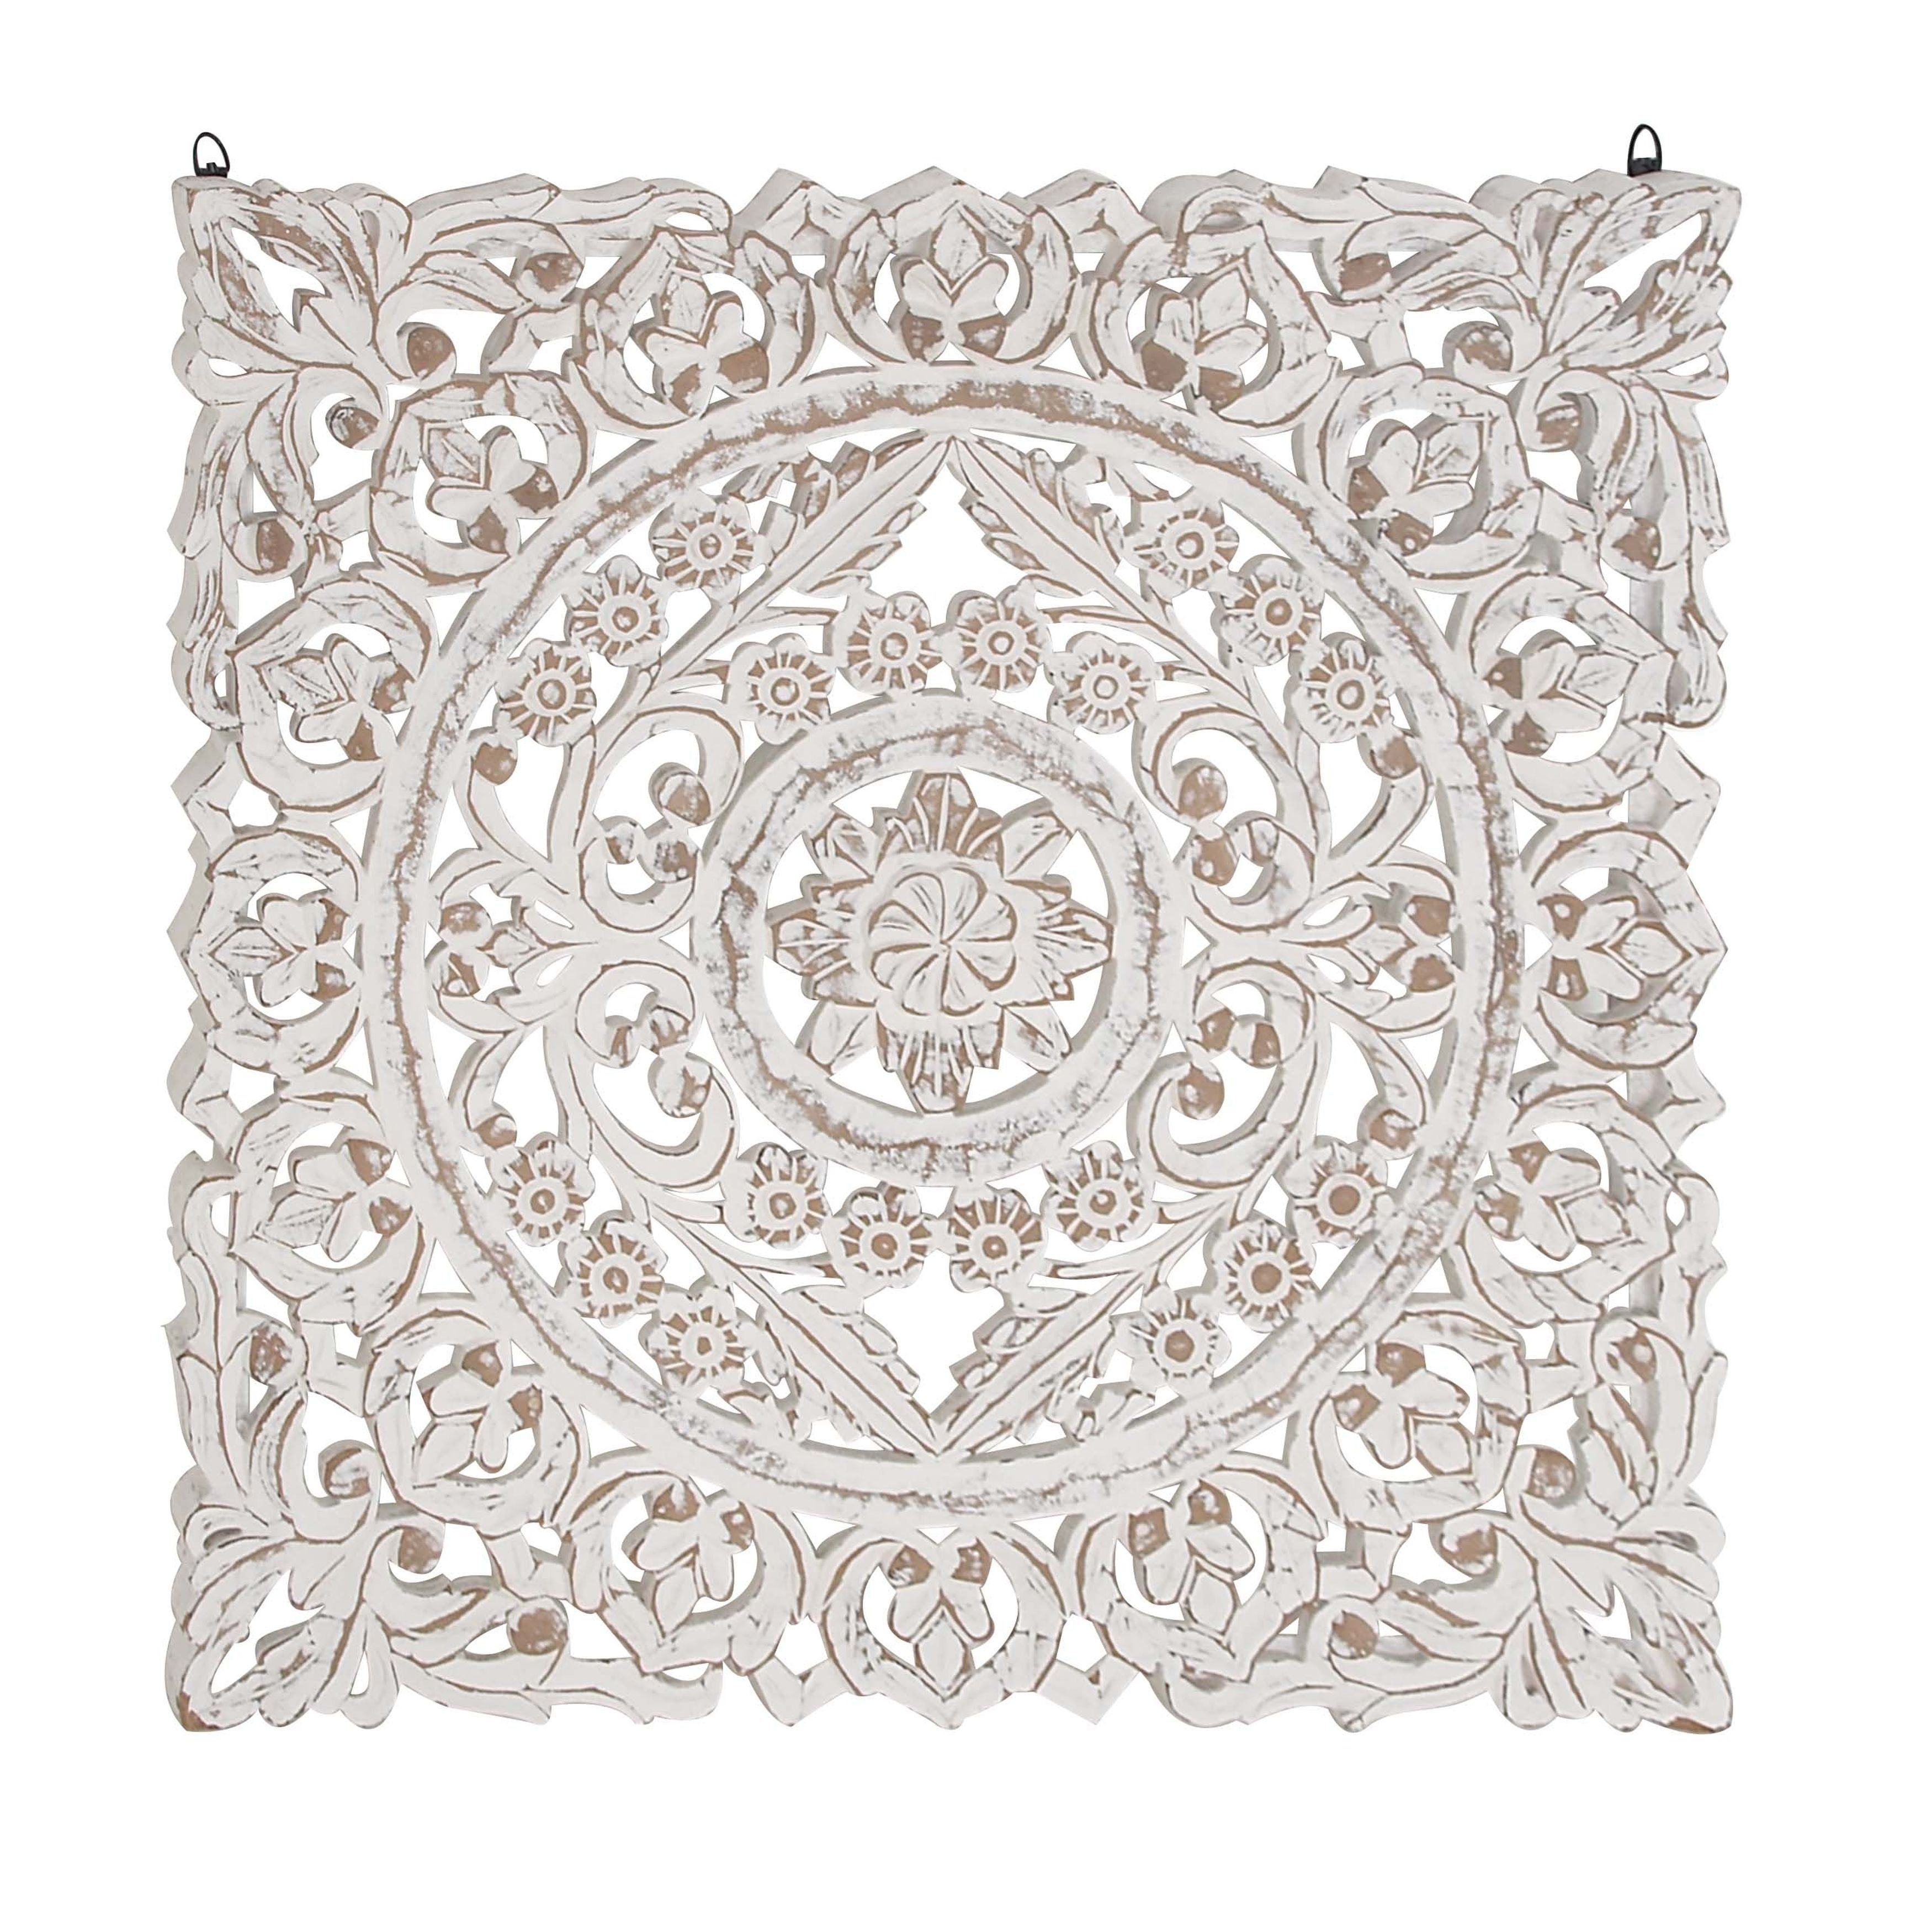 Rustic Wood Whitewashed Floral Medallion Wall Panel Medallion Wall Decor Wood Panel Walls Wall Paneling